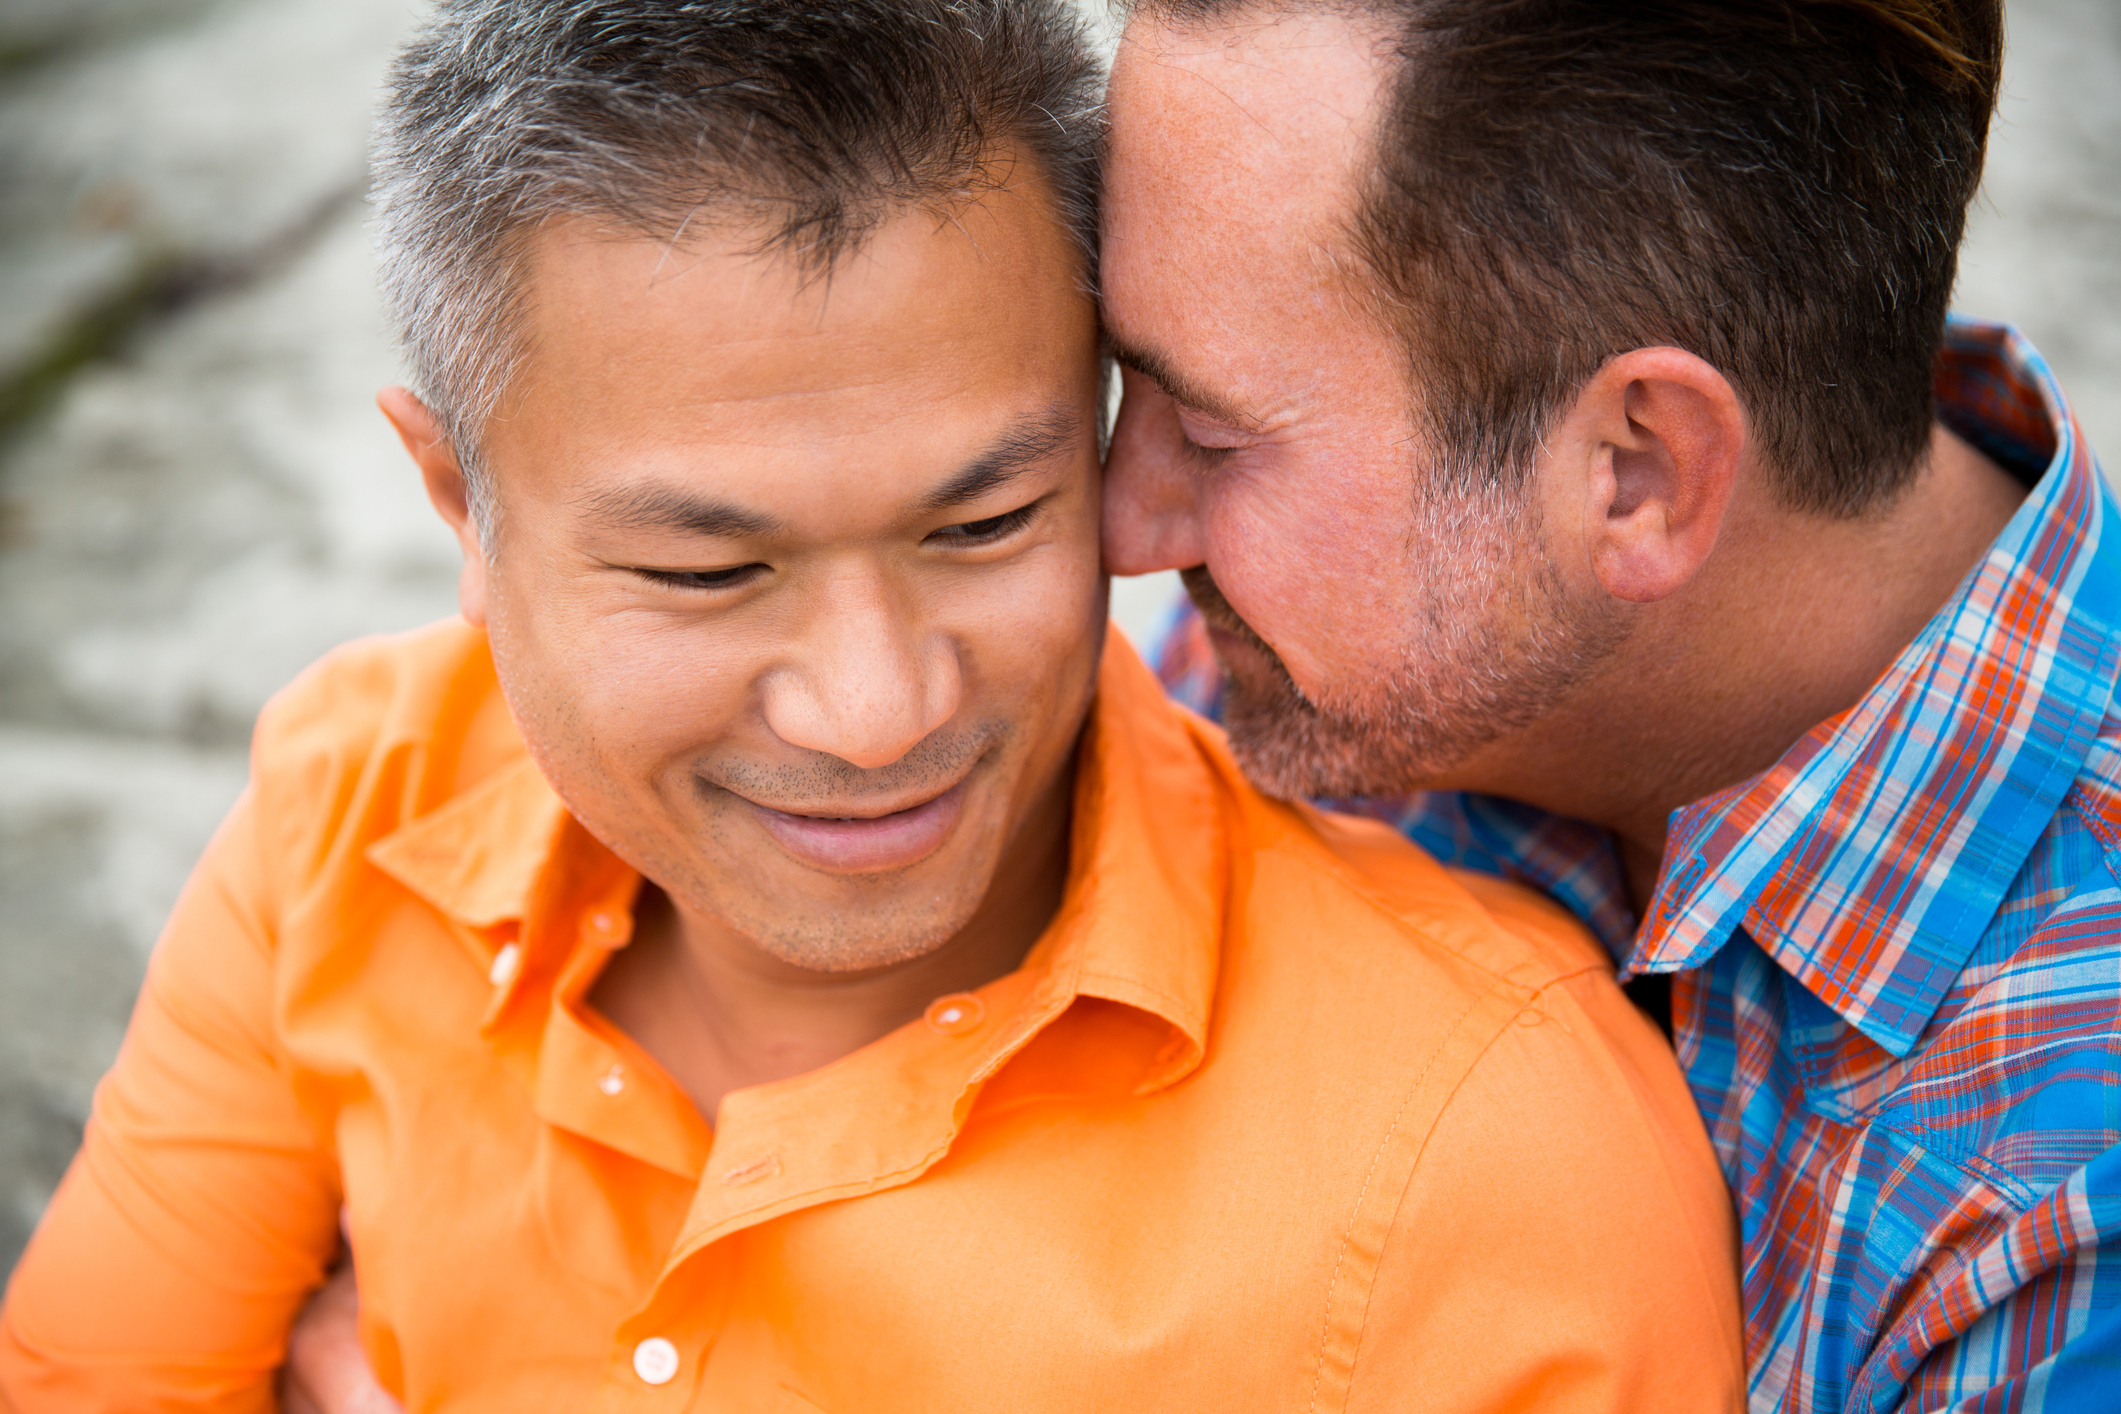 Queer Couples Counseling & Sex Therapy - North Berkeley Couples Therapy Center celebrates & respects diversity. All of our clinicians are LGBTQ+ sensitive and/or identify as such. We also support kink, poly, and other non-traditional relationship configurations. Our therapists are also trauma informed in their work.